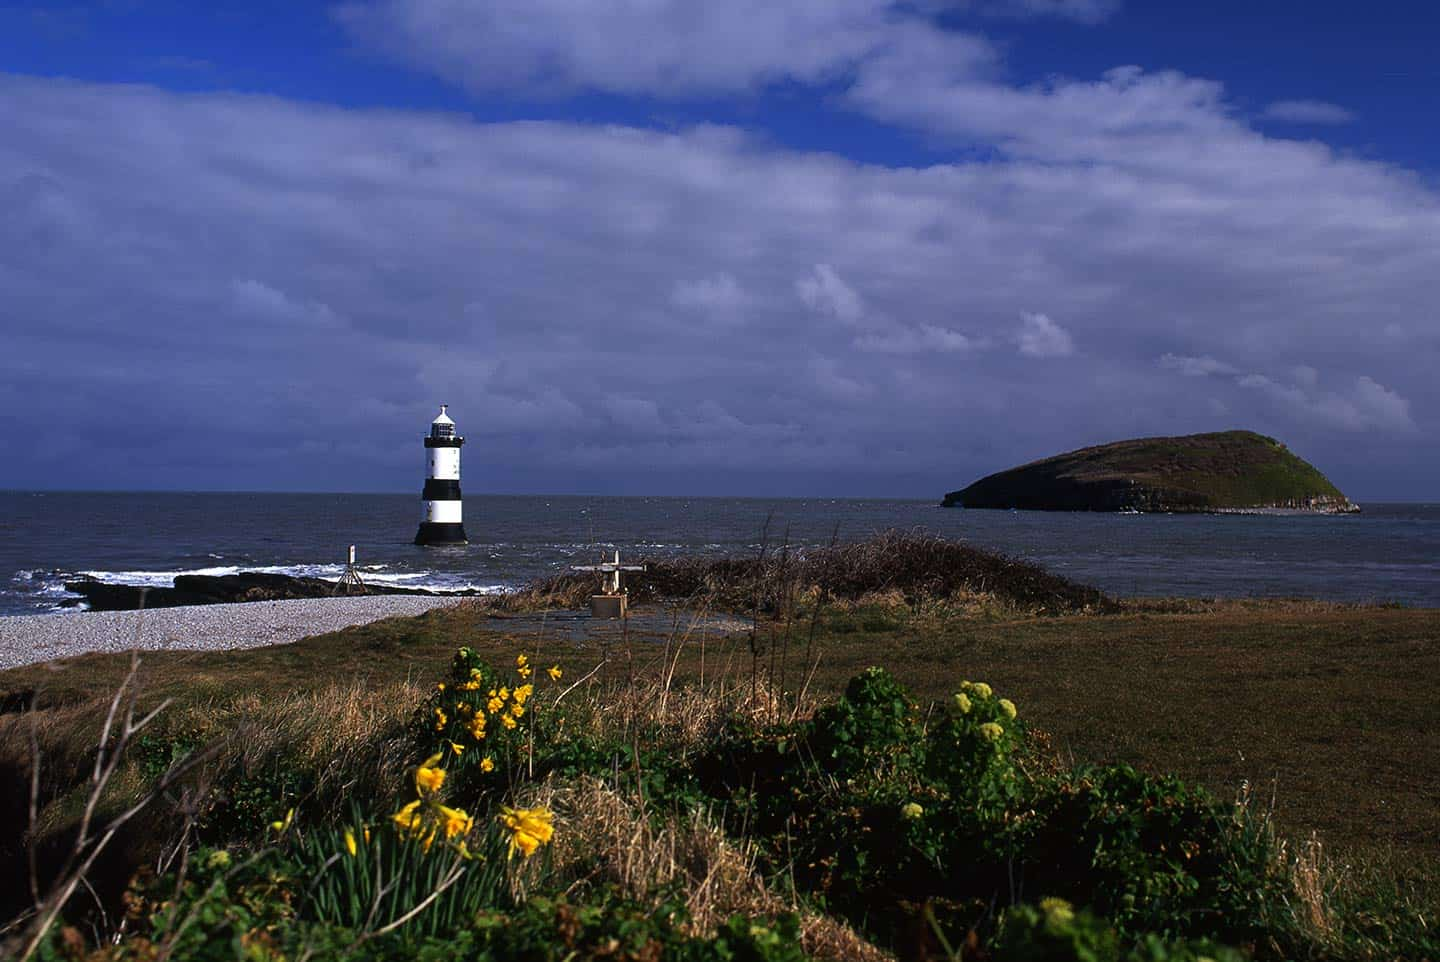 Image of the beach at Penmon Point and Puffin Island, Anglesey